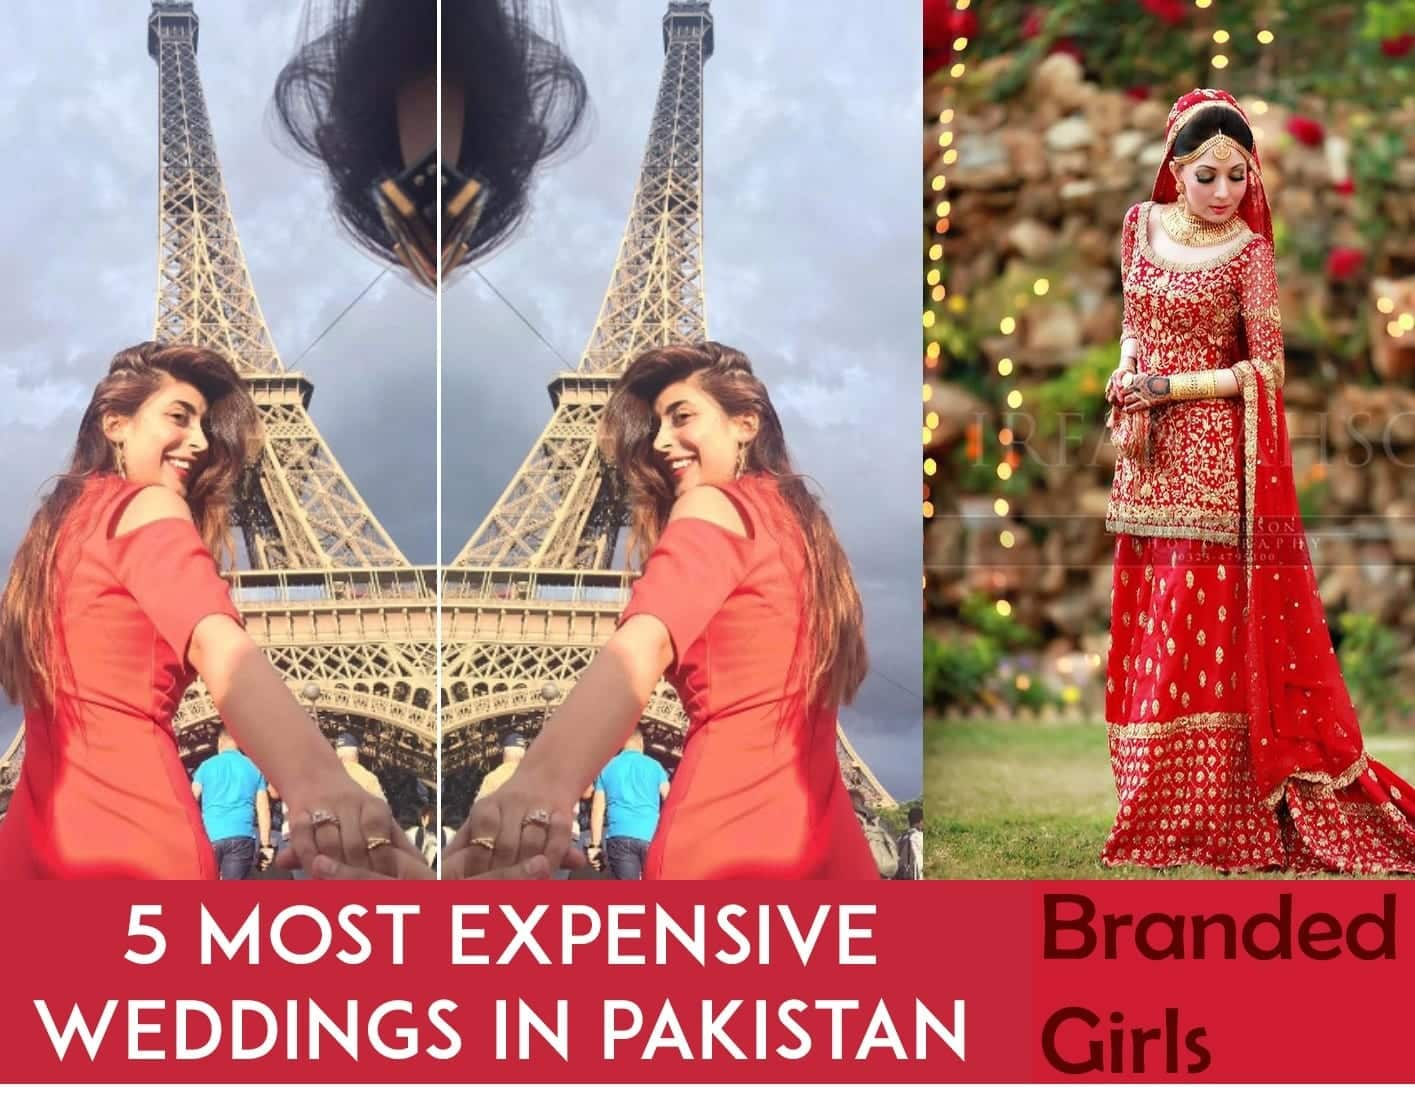 most-expensive-weddings-in-pakistan Top 5 Expensive Weddings in Pakistan - Most Lavish Pakistani Weddings